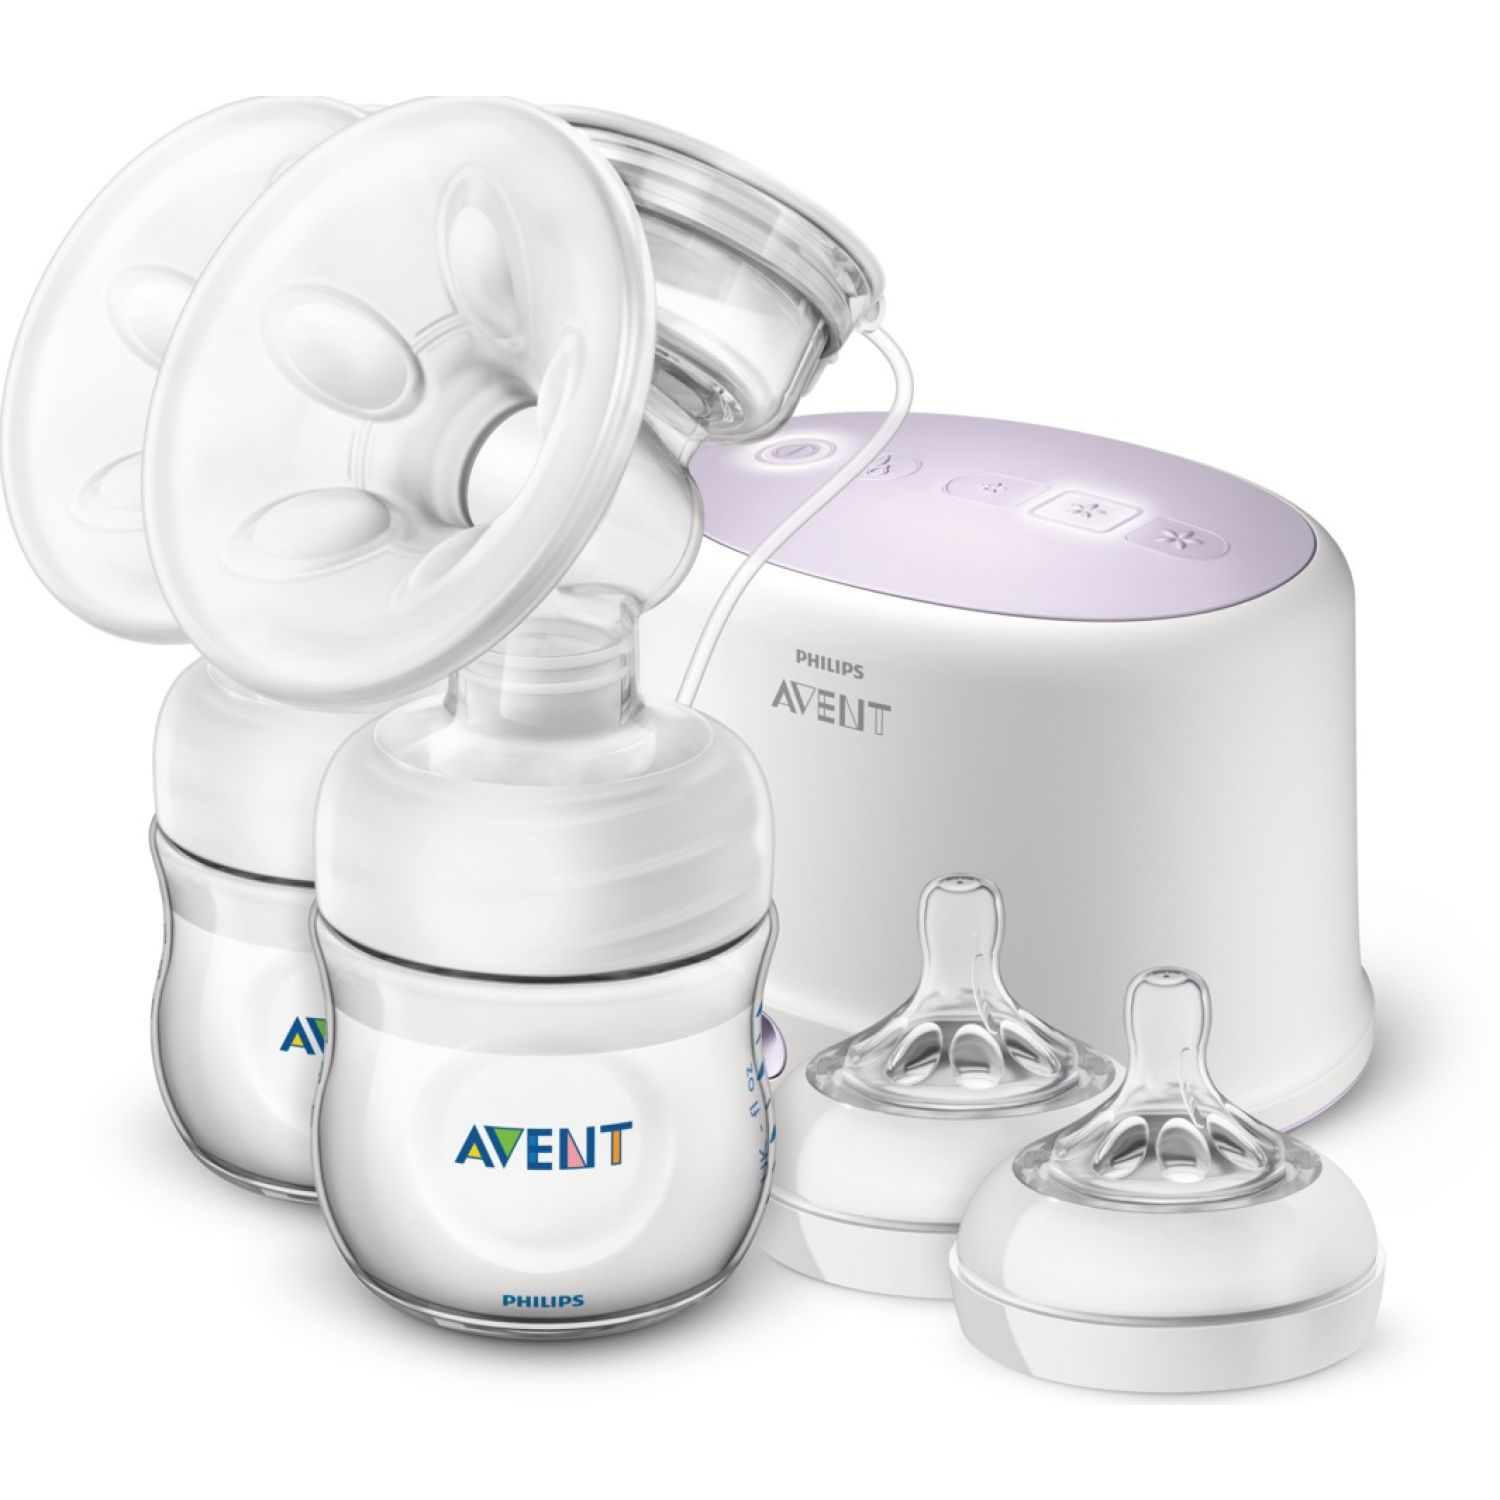 PHILIPS AVENT EXTRACTOR ELECTRICO AVENT NATURAL DOBLE Transparente doble eléctrico